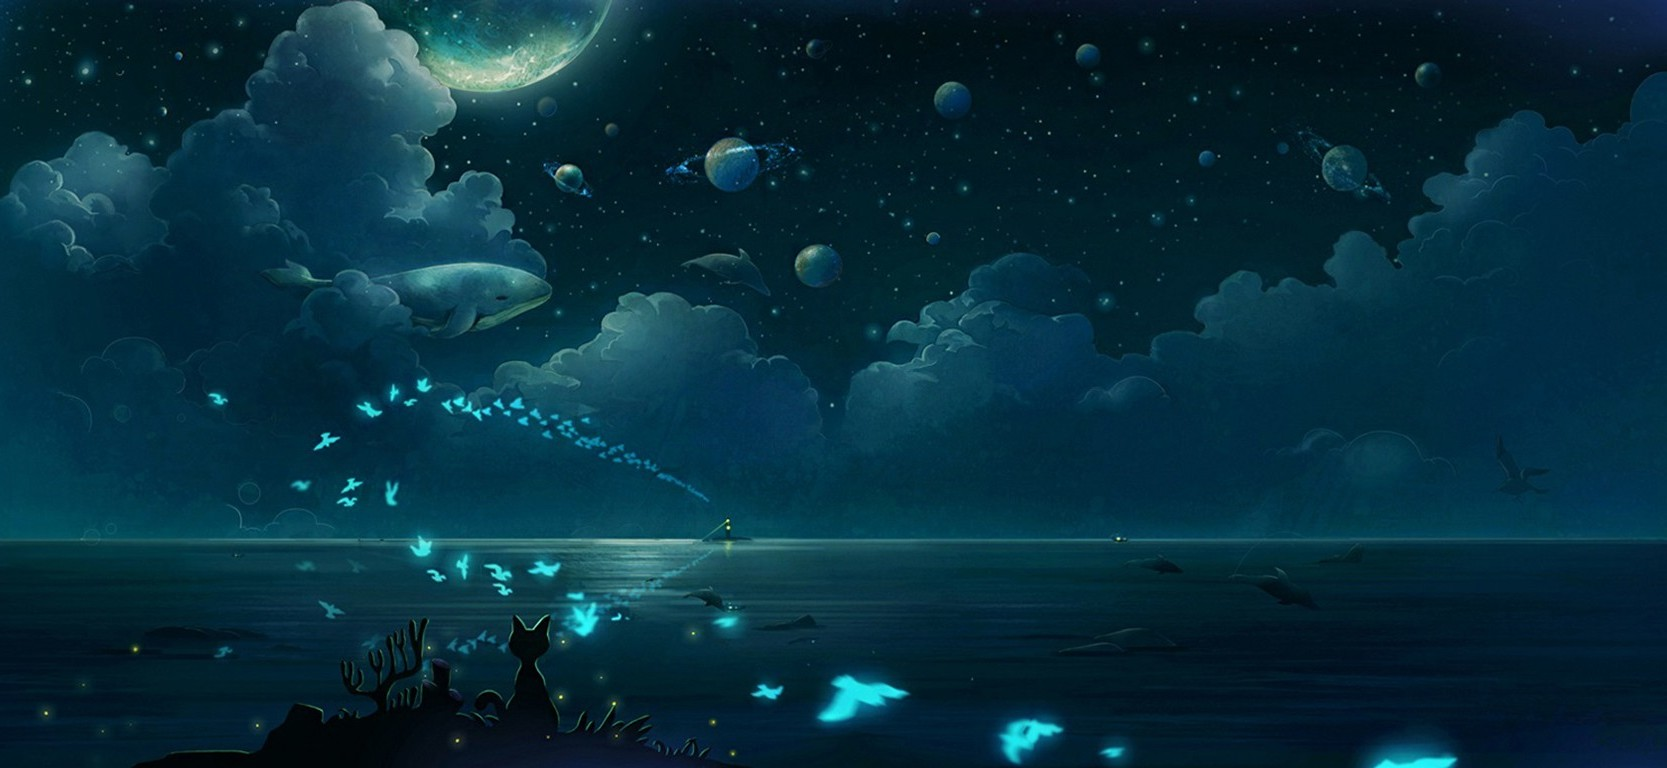 Fish 3d Wallpaper Download Butterfly Clouds Night Moonlight Planet Whale Cat Fish